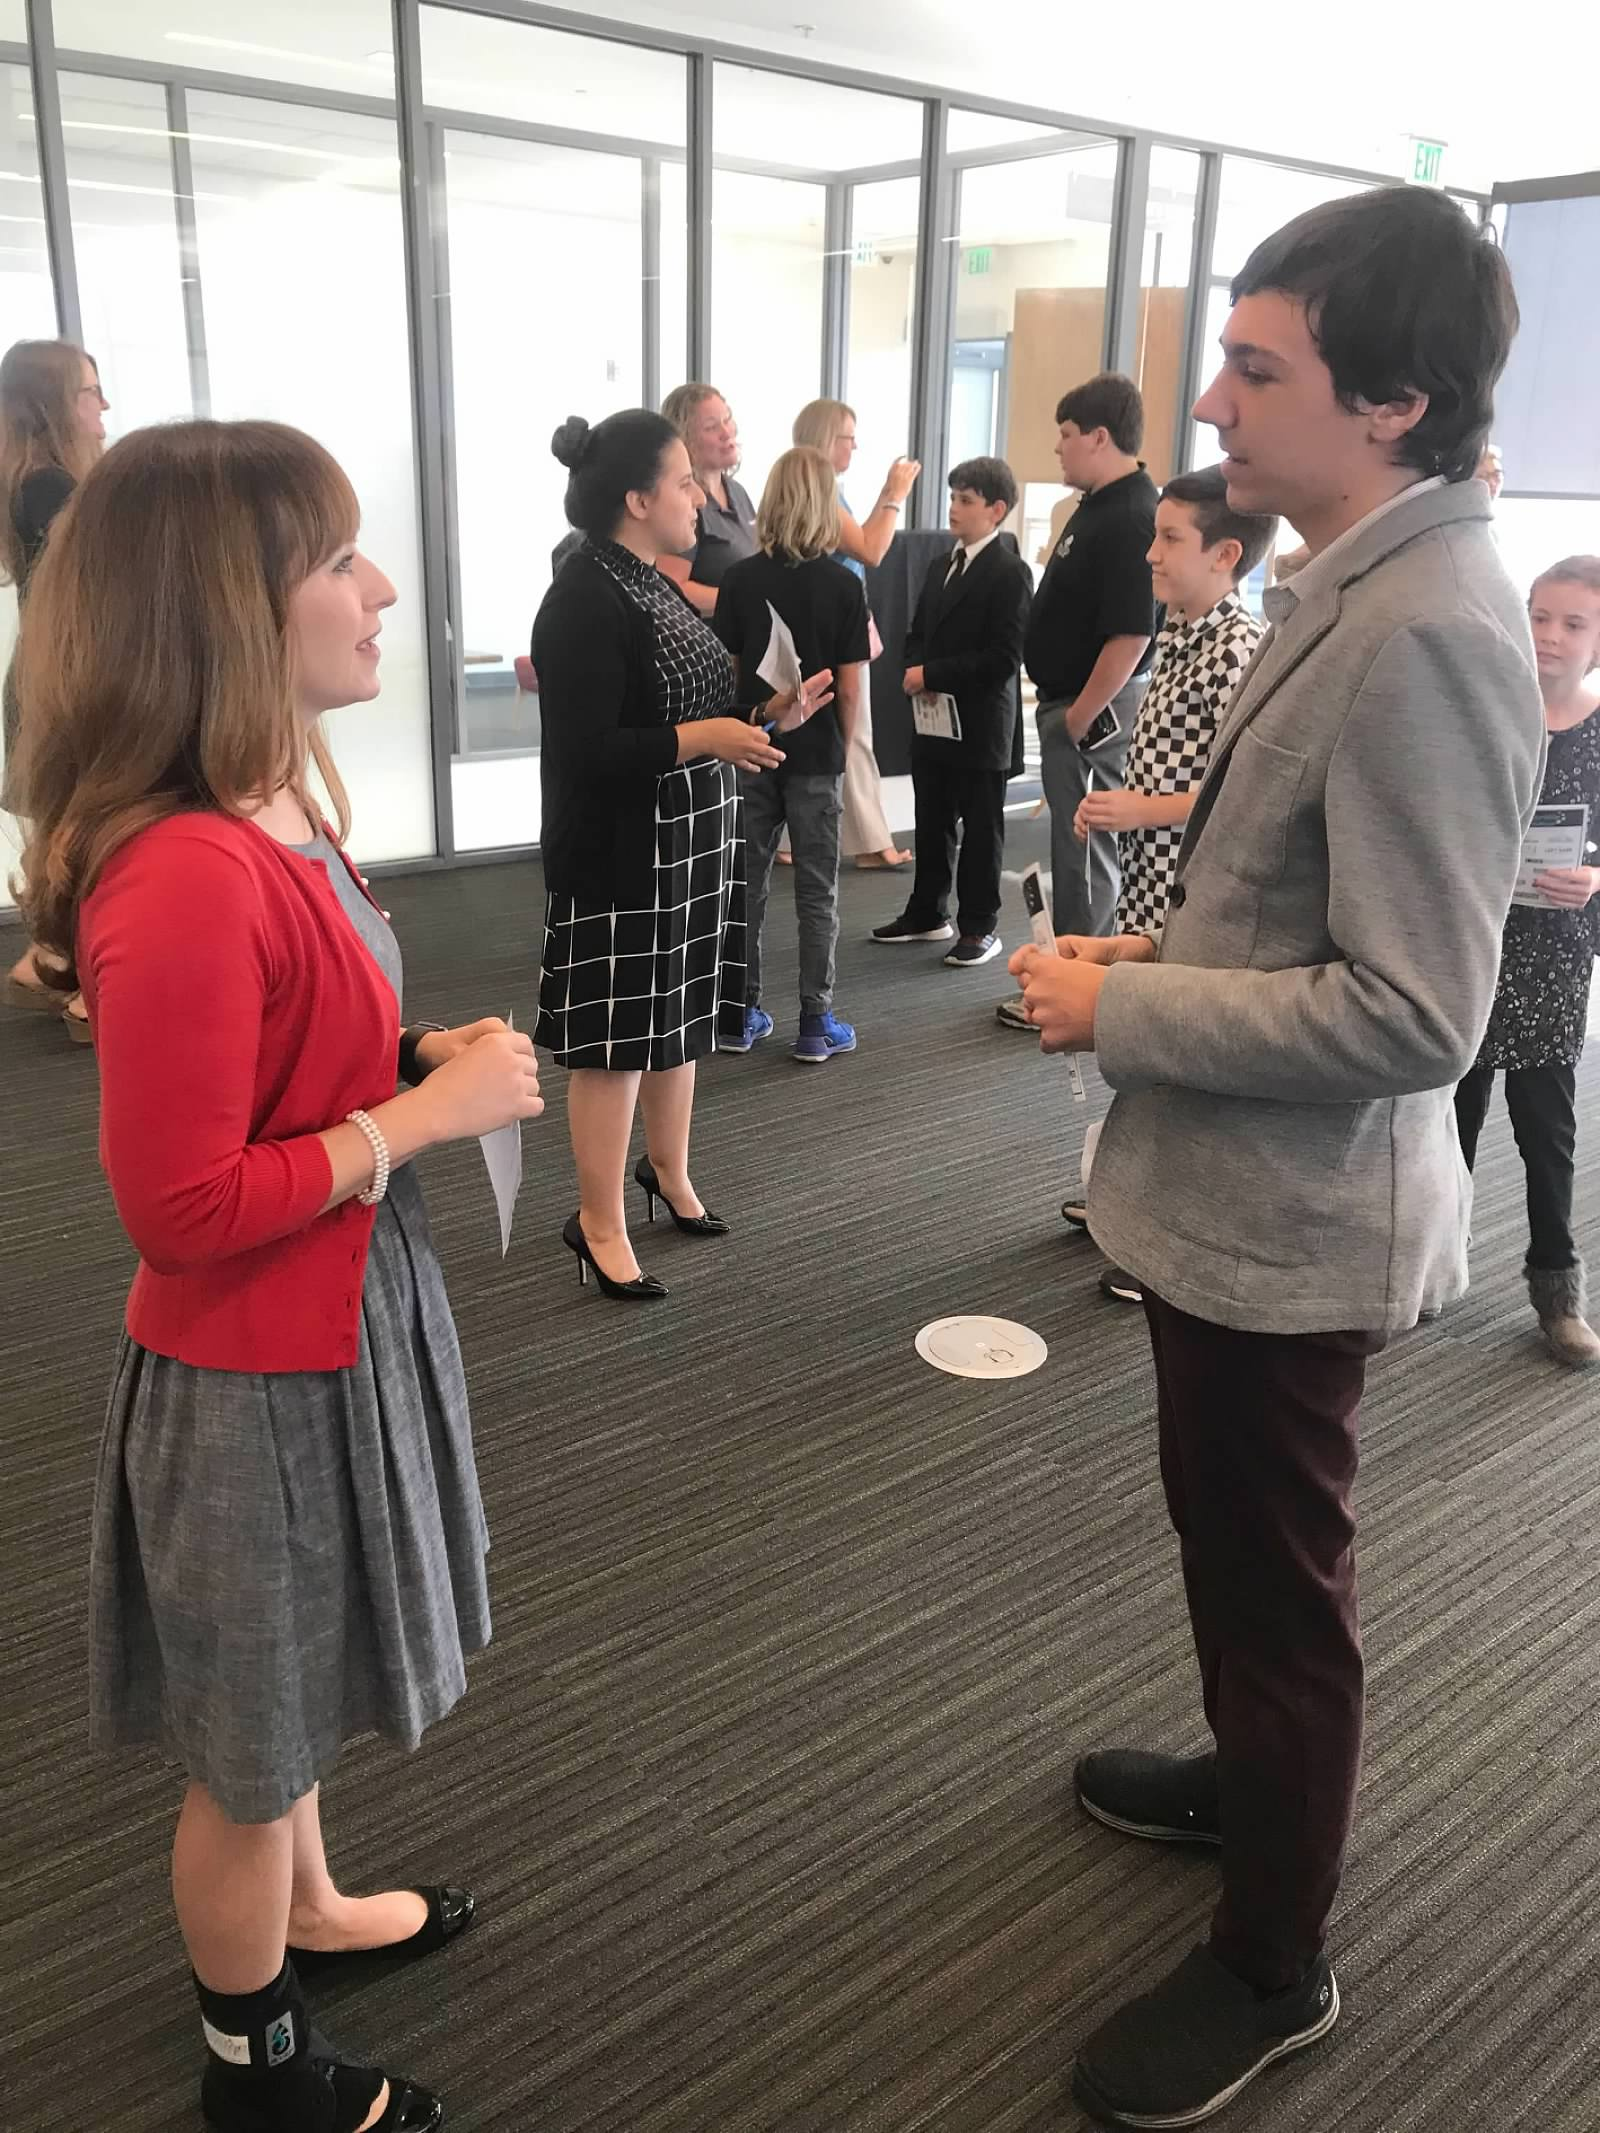 Students practicing networking skills